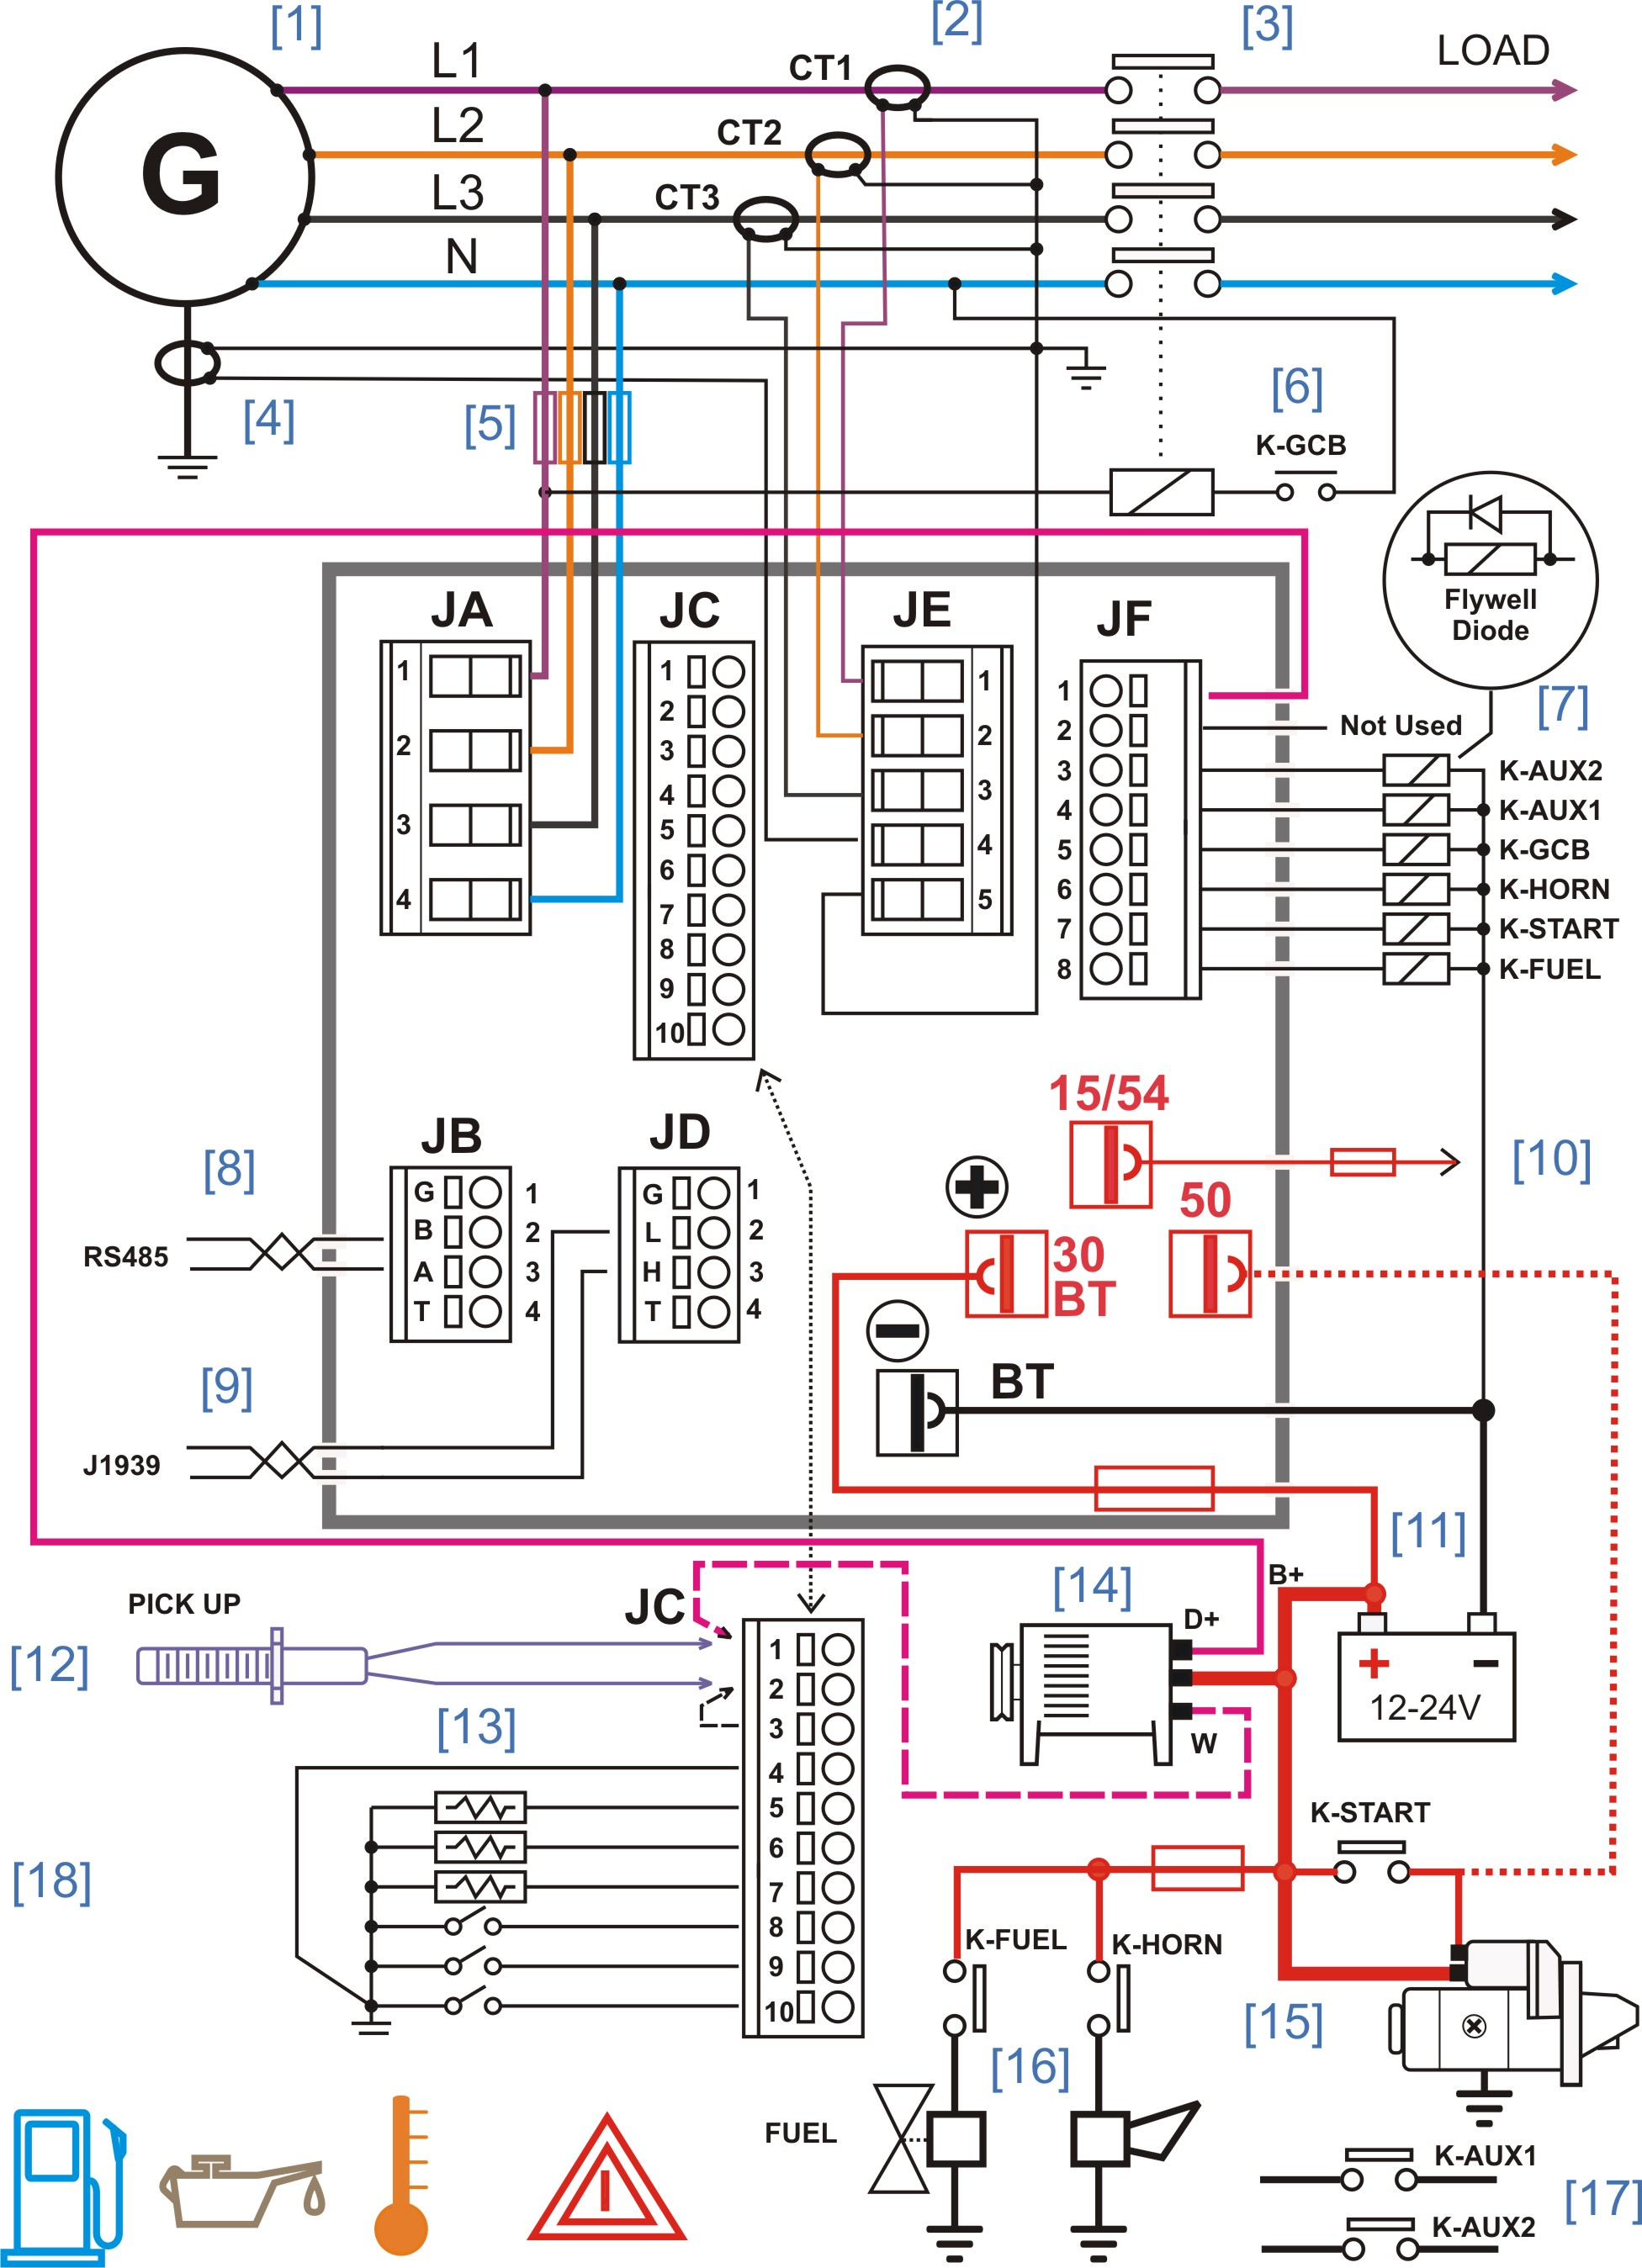 Diesel Generator Control Panel Wiring Diagram wiring diagram generator genset wiring to house \u2022 wiring diagrams  at readyjetset.co